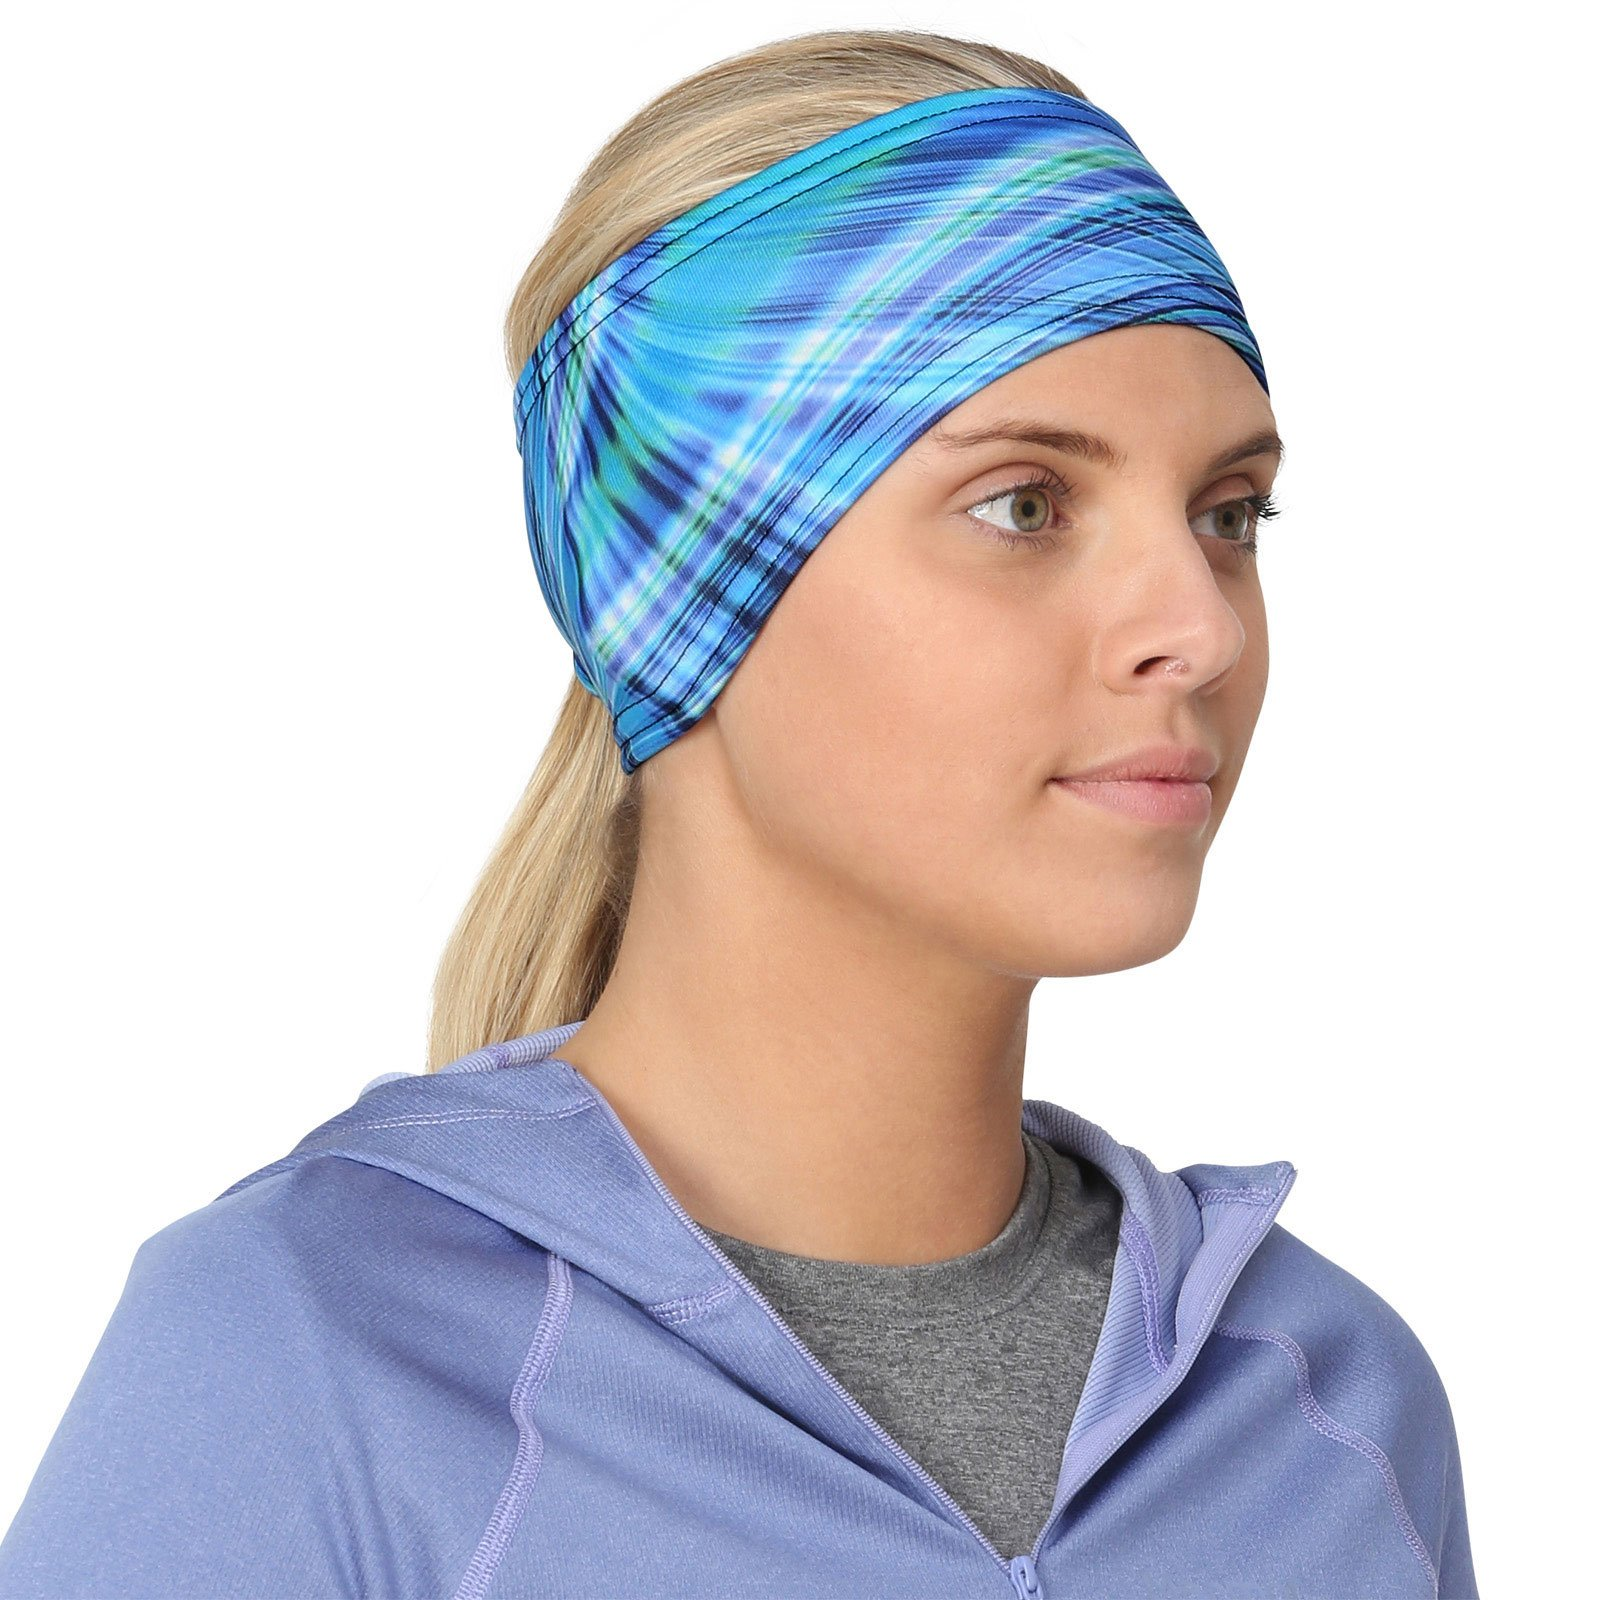 TrailHeads Women's Print Ponytail Headband – 12 prints  - Made in USA - deep dive blue